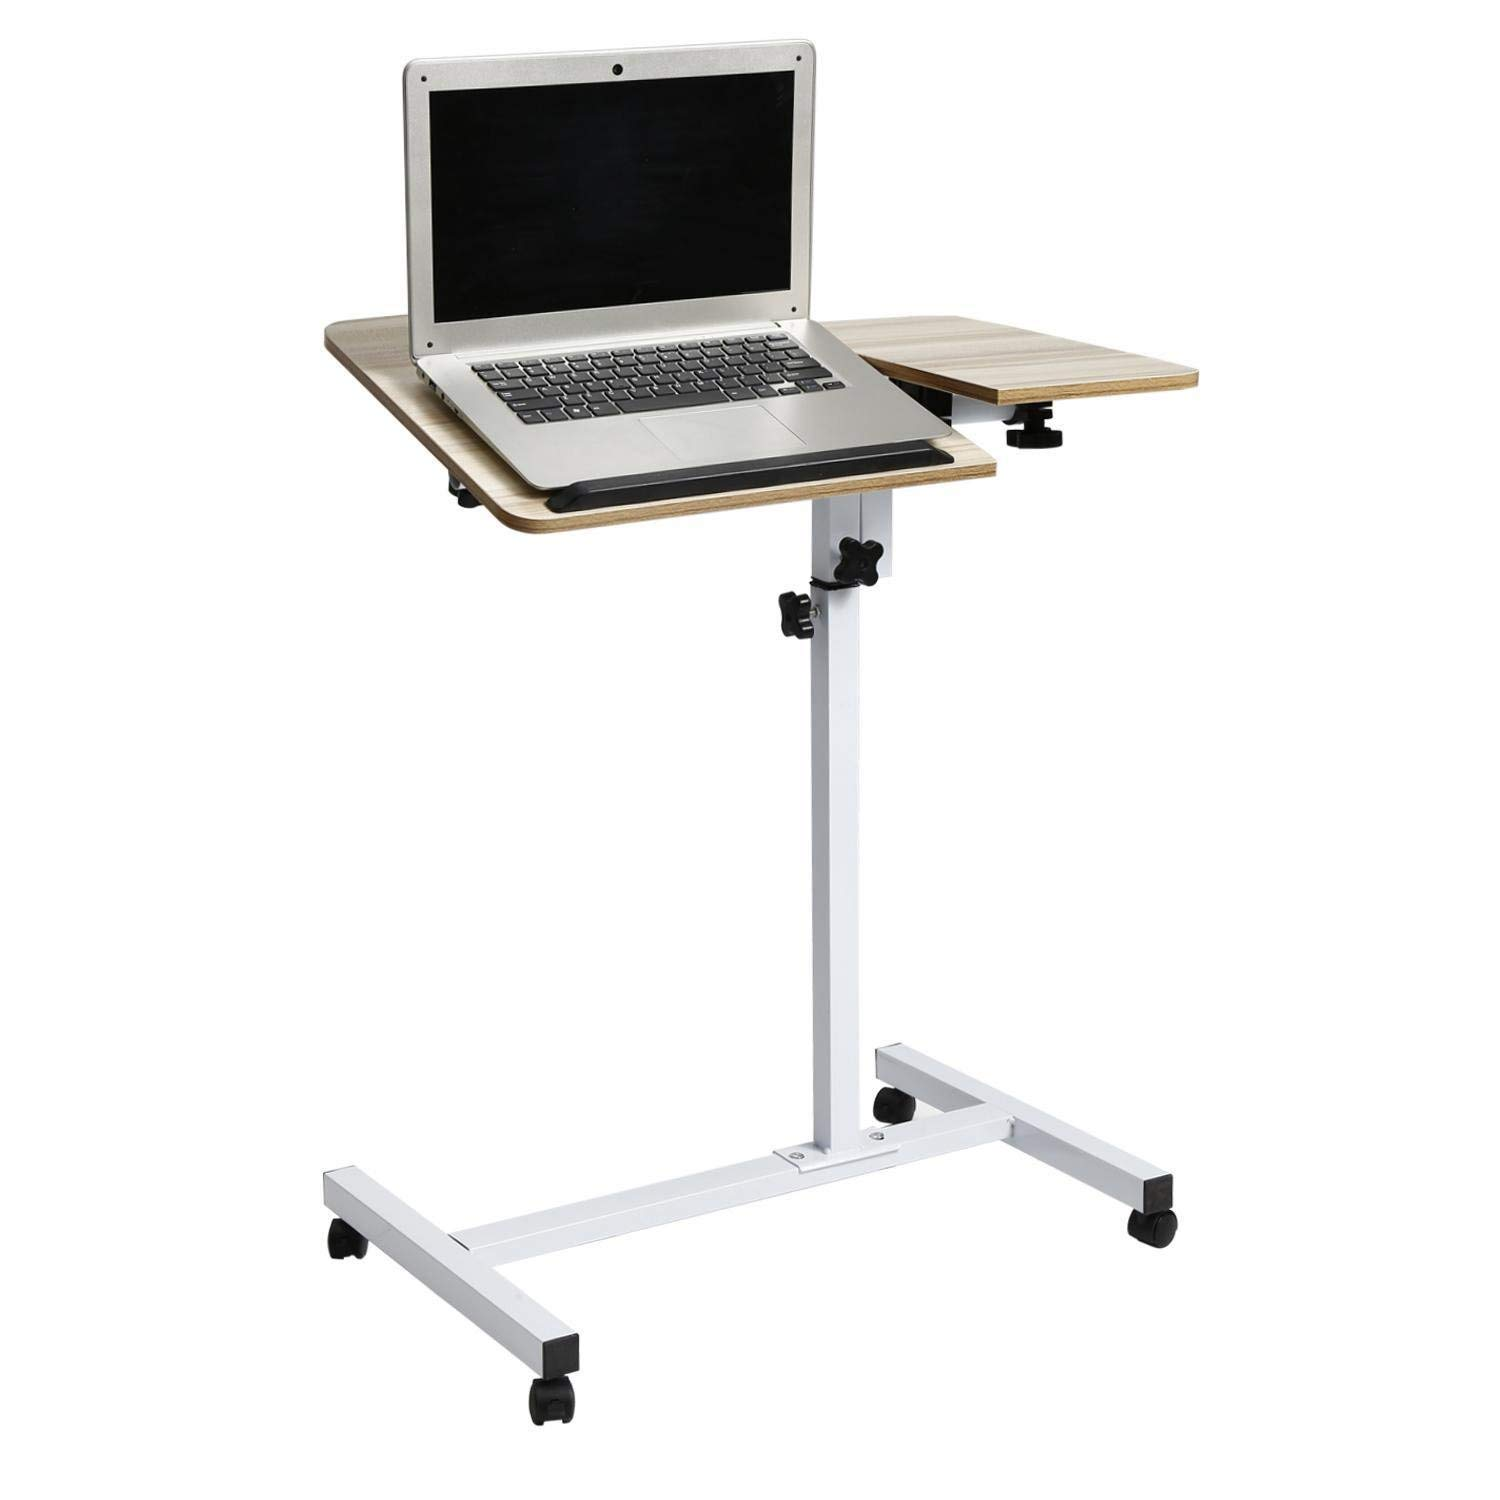 Mewalker Wood Mobile Laptop Desk, Angle Height Adjustable Moveable Bedroom Table Stand, US STOCK (Apricot)